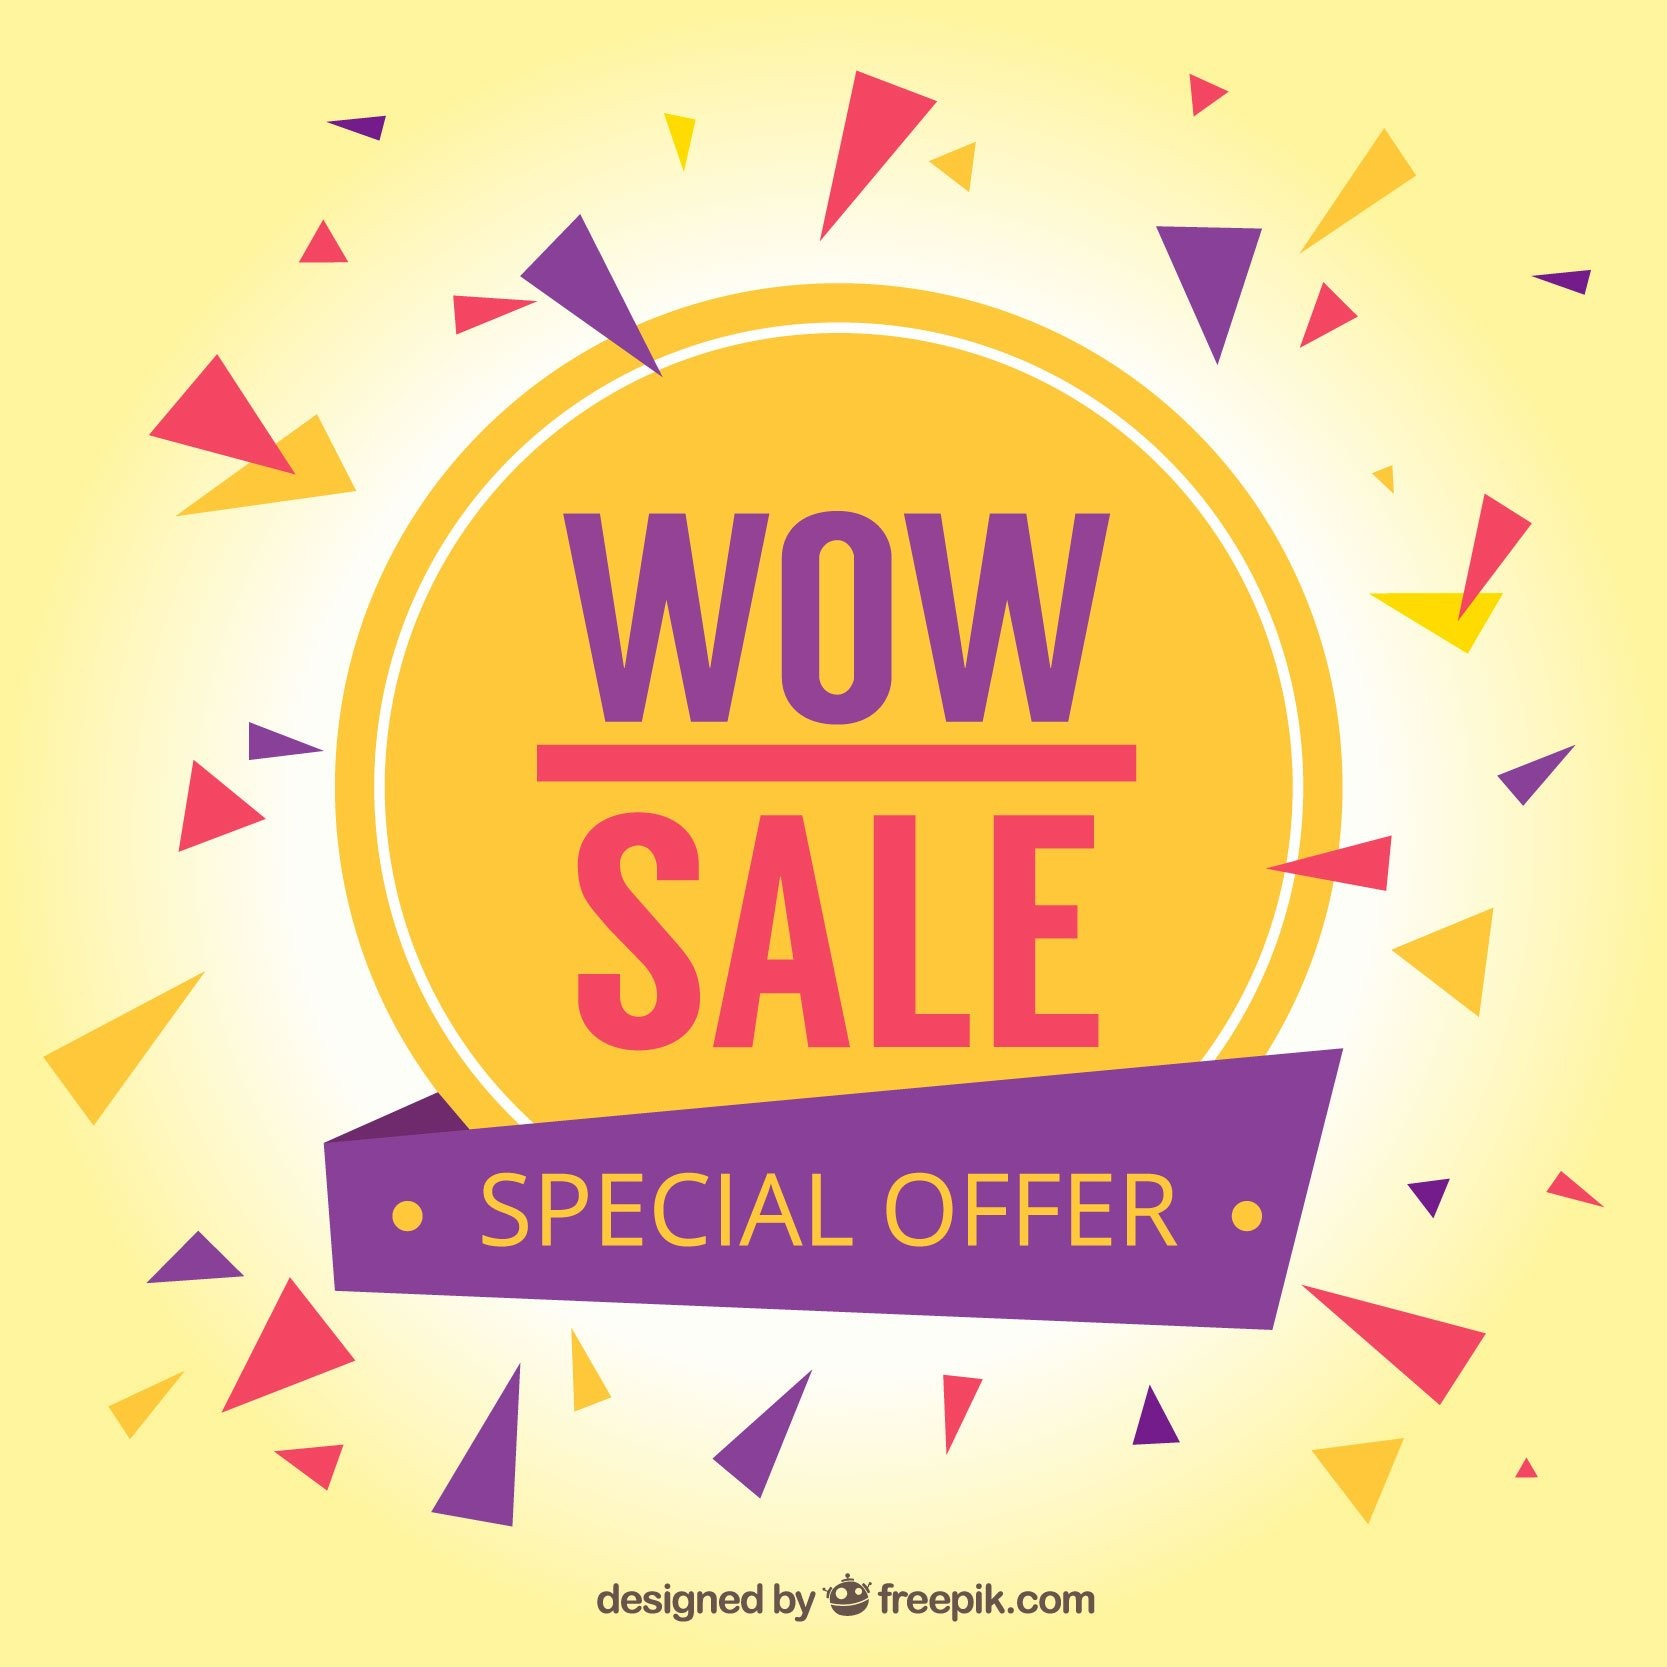 Wow sale special offer banner